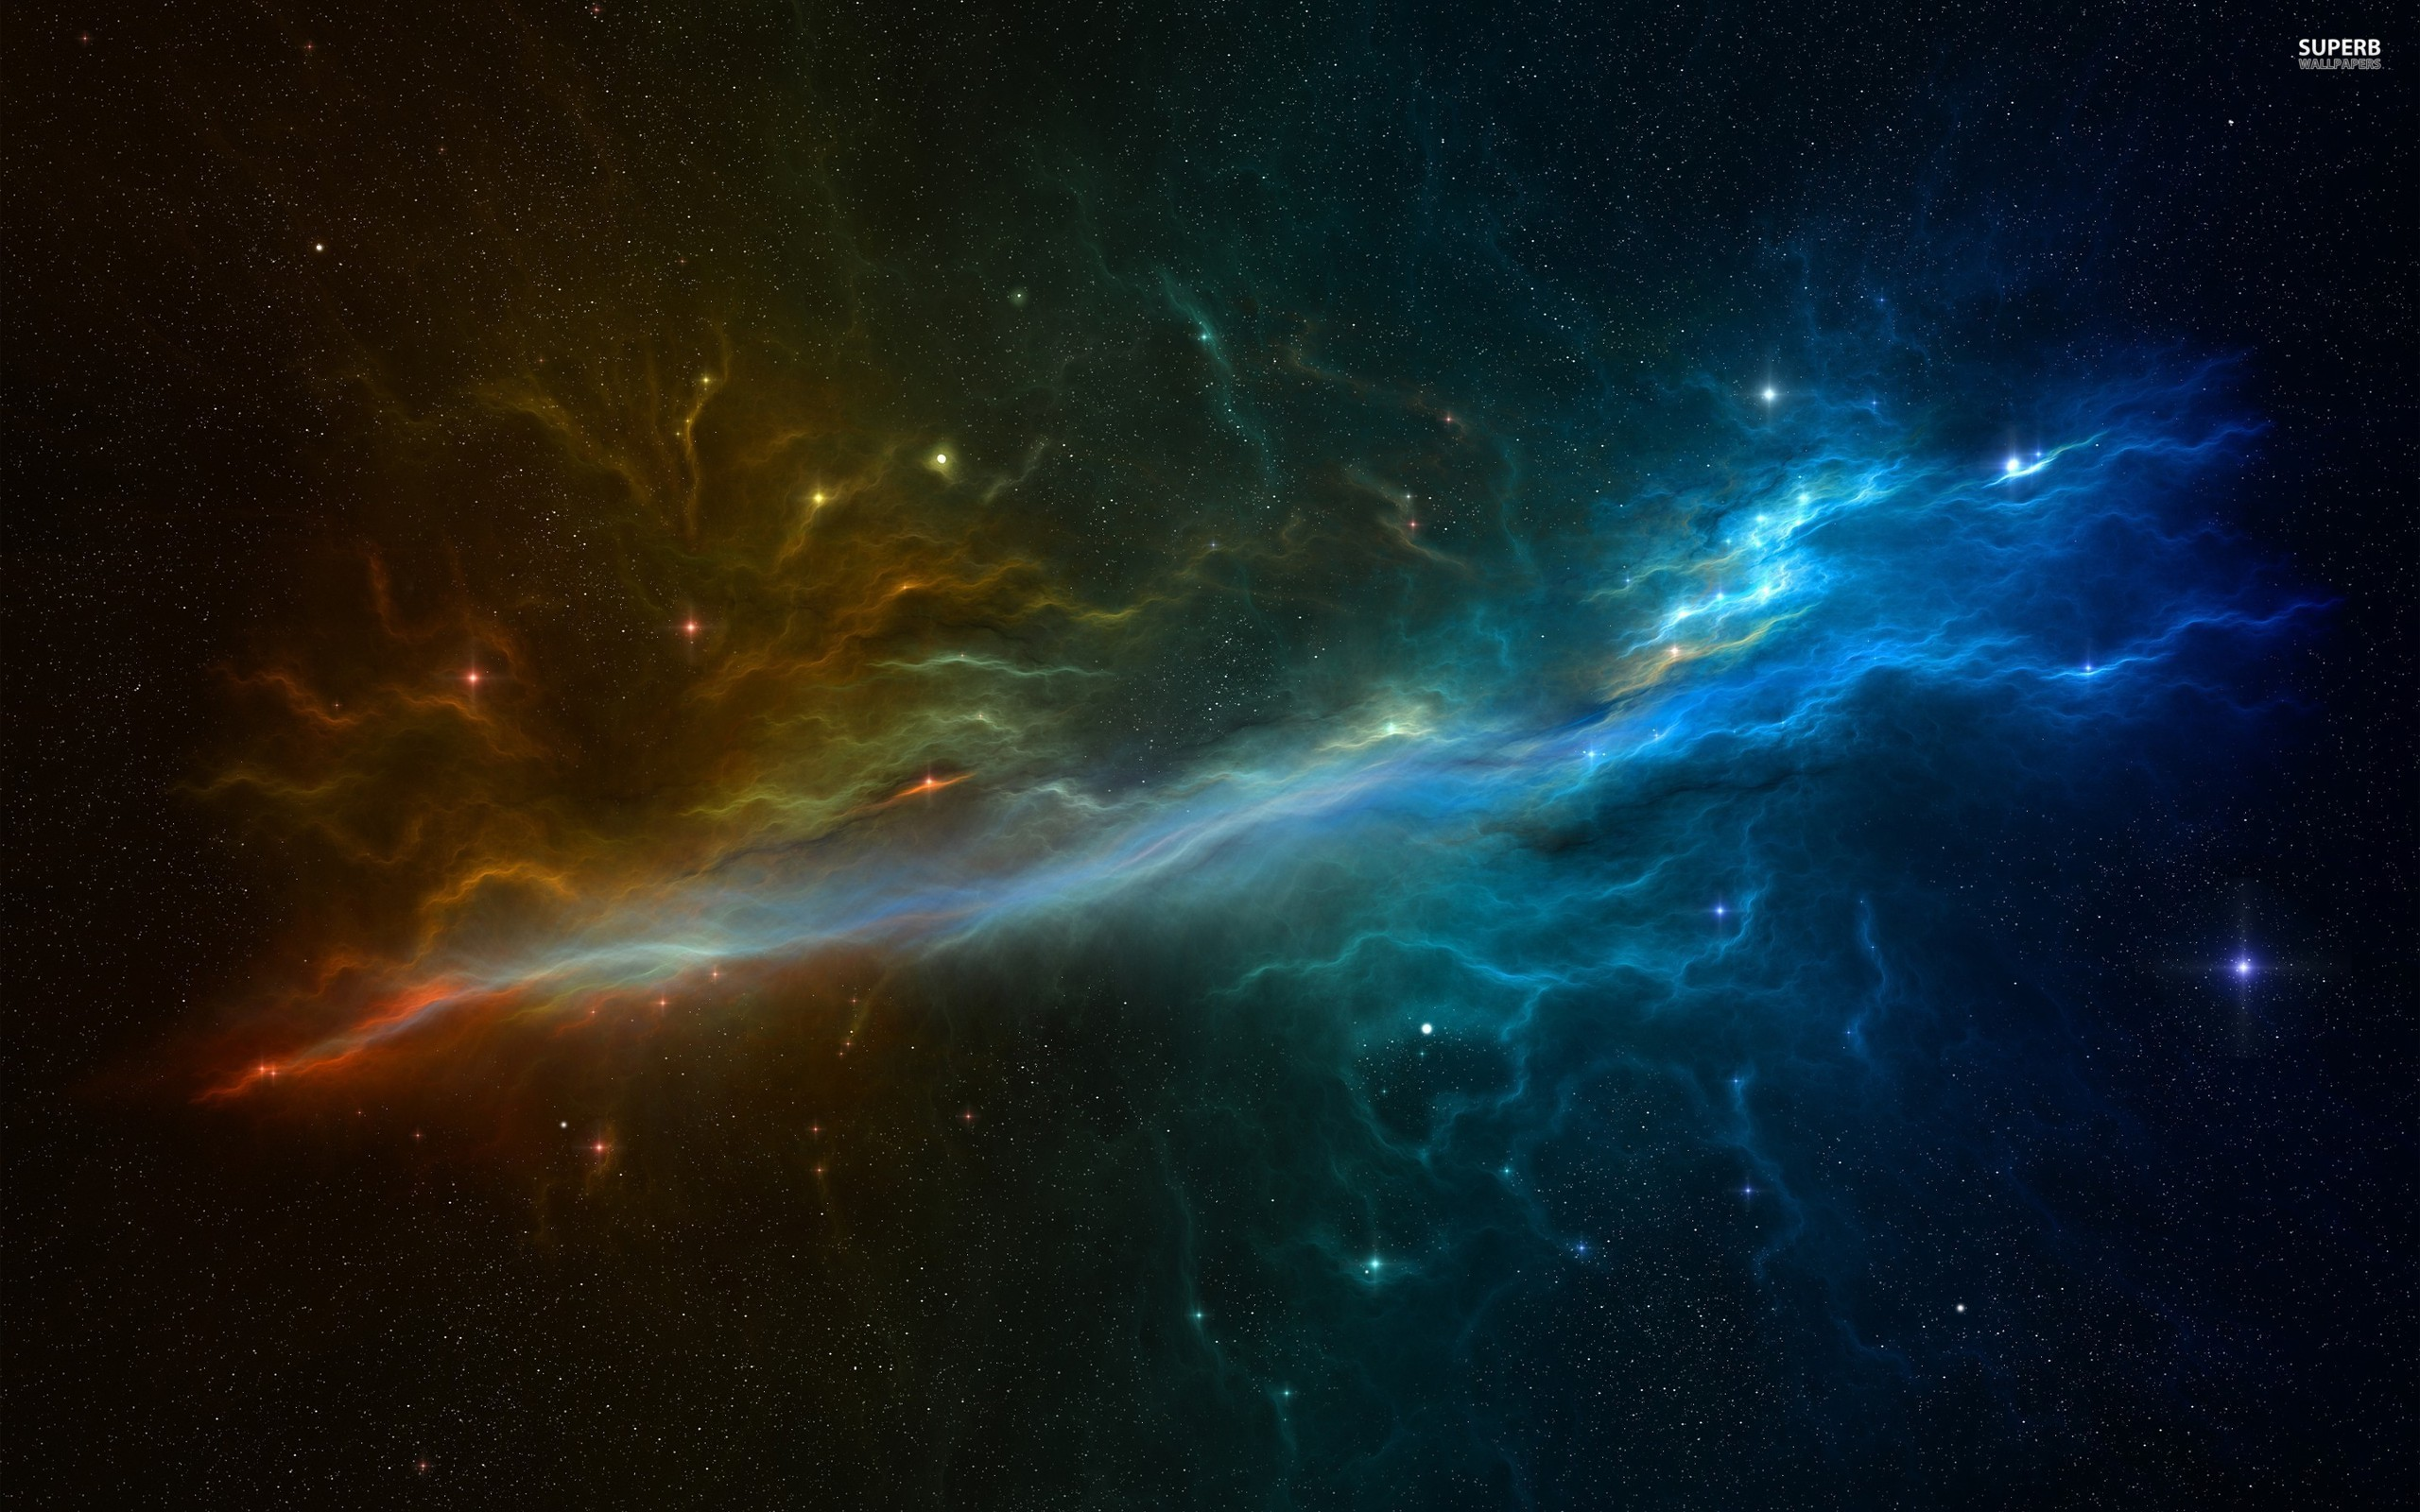 Nebula wallpaper 2560x1600